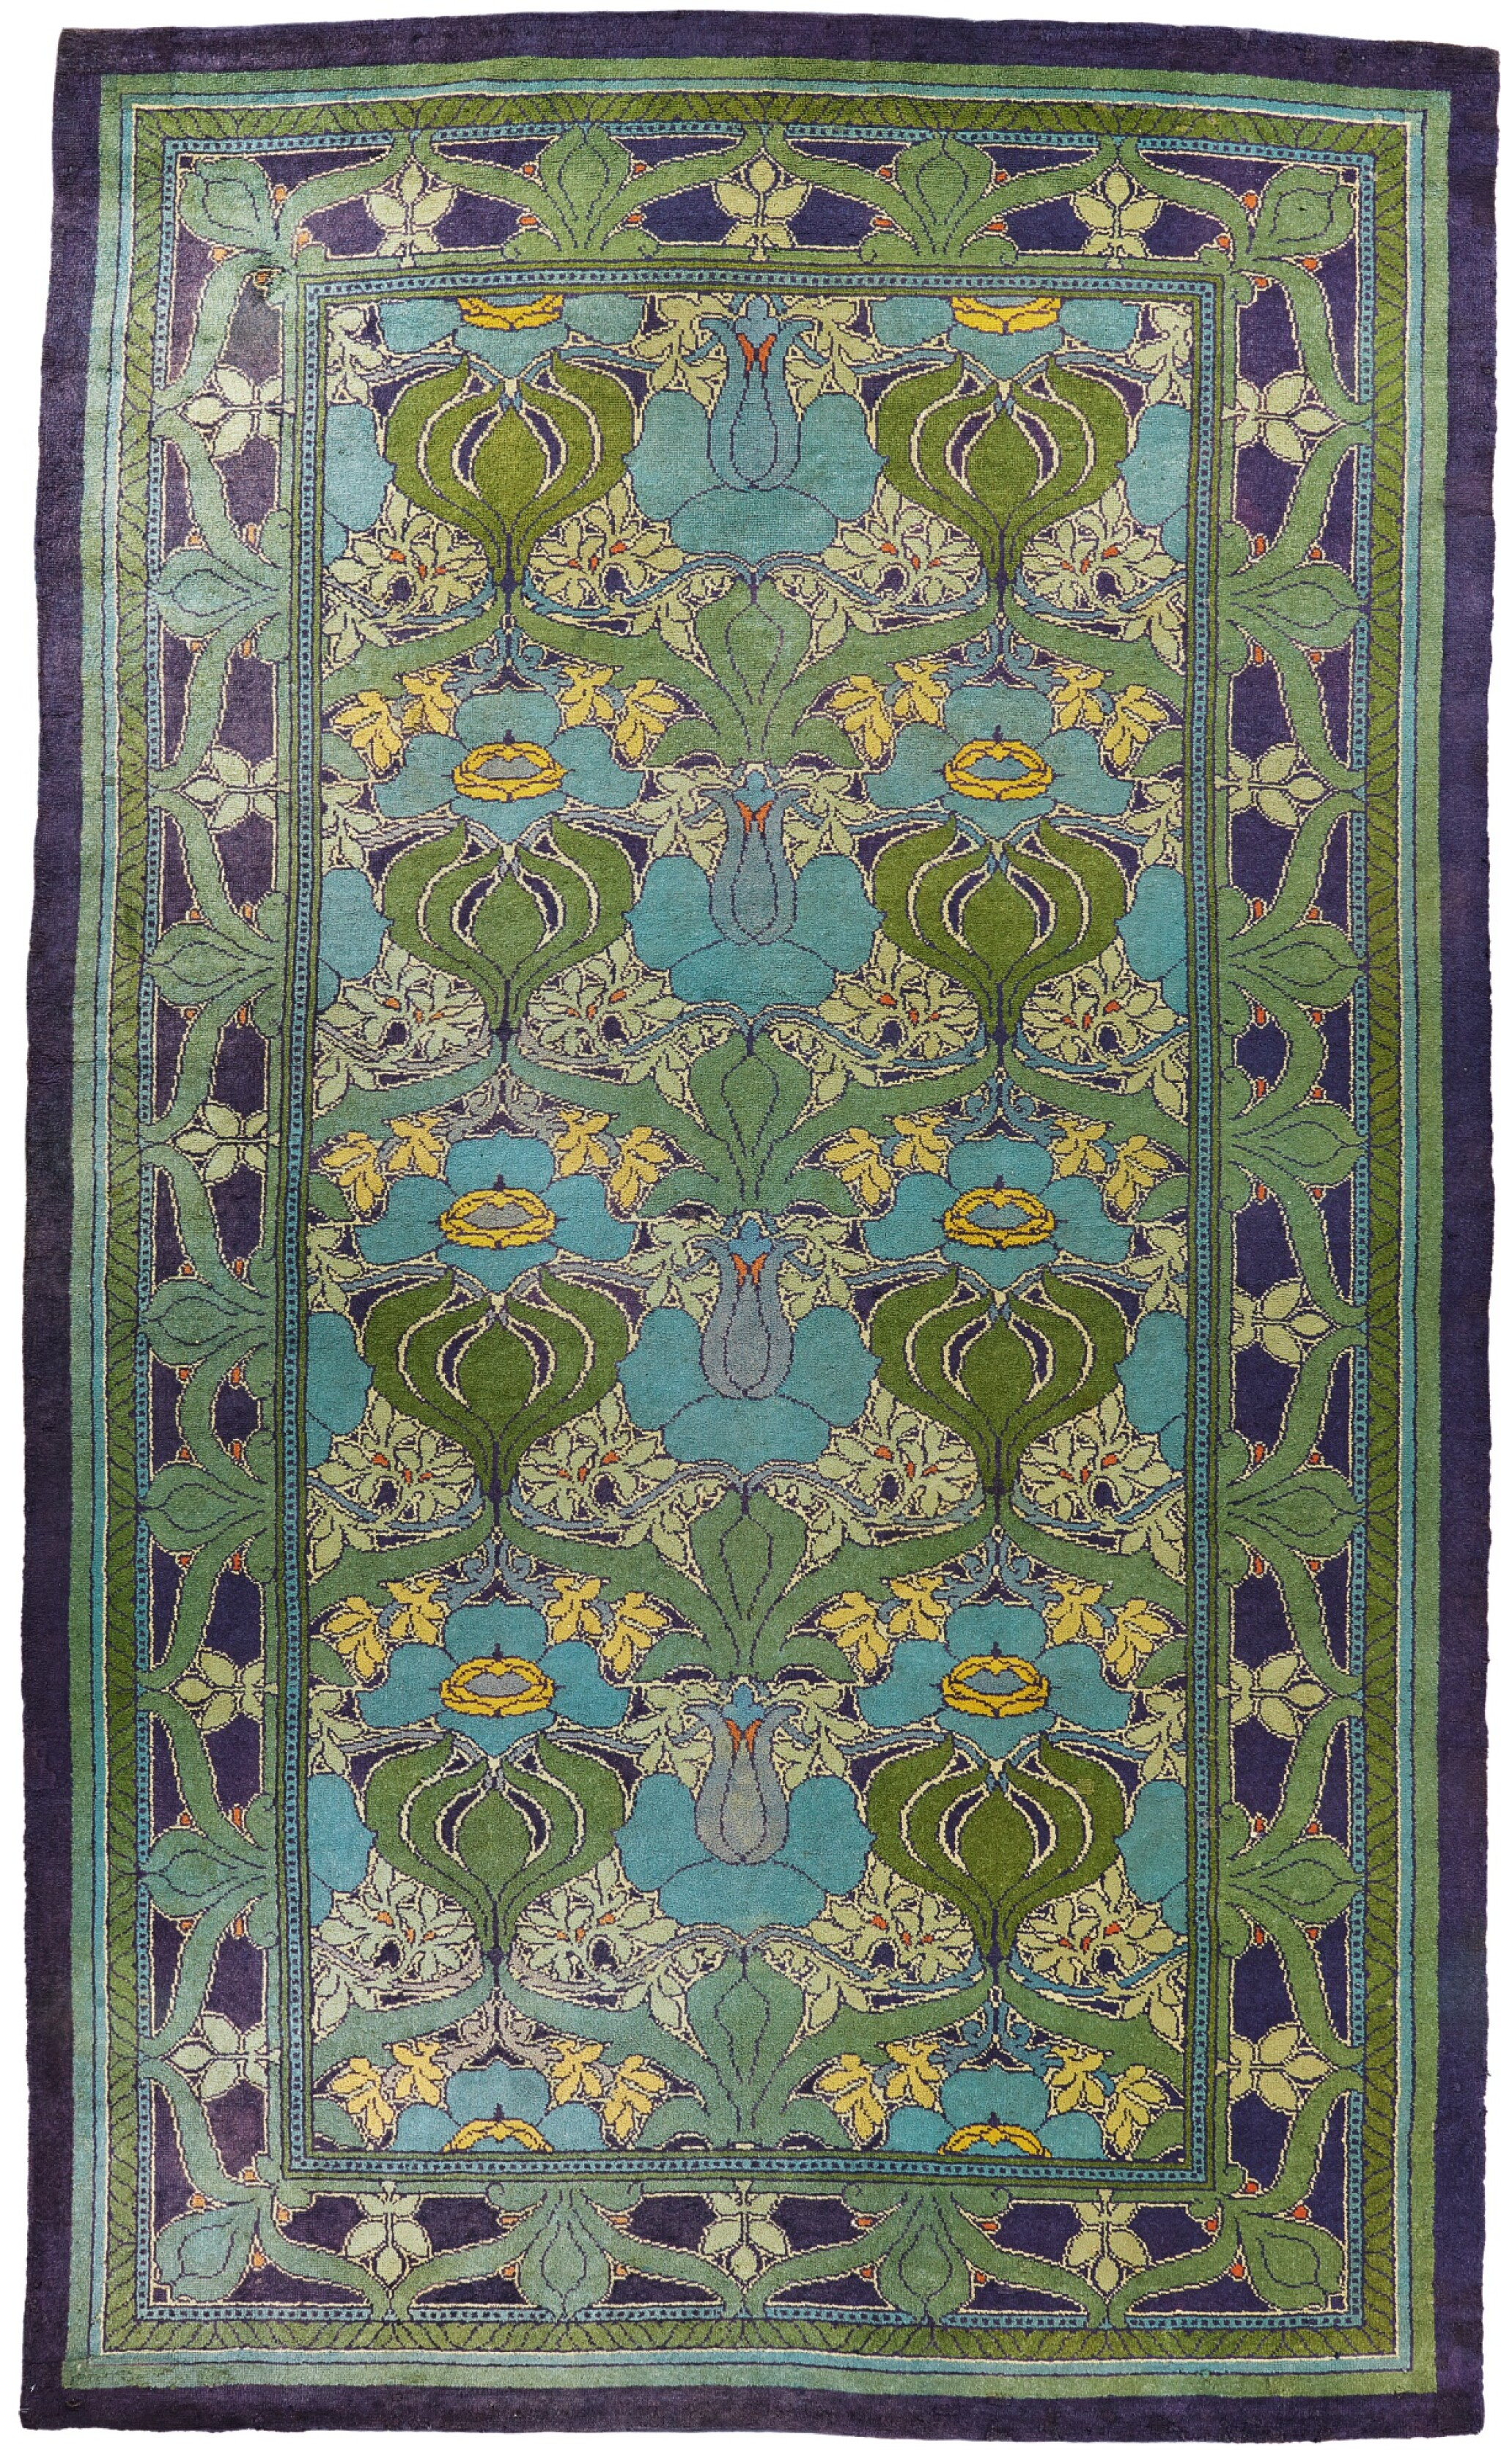 View 1 of Lot 92. C.F.A VOYSEY (1857-1941), THE 'DONNEMARA' PILE CARPET, MORTON & CO., WOVEN KILLYBEGS, DONEGAL, IRELAND .